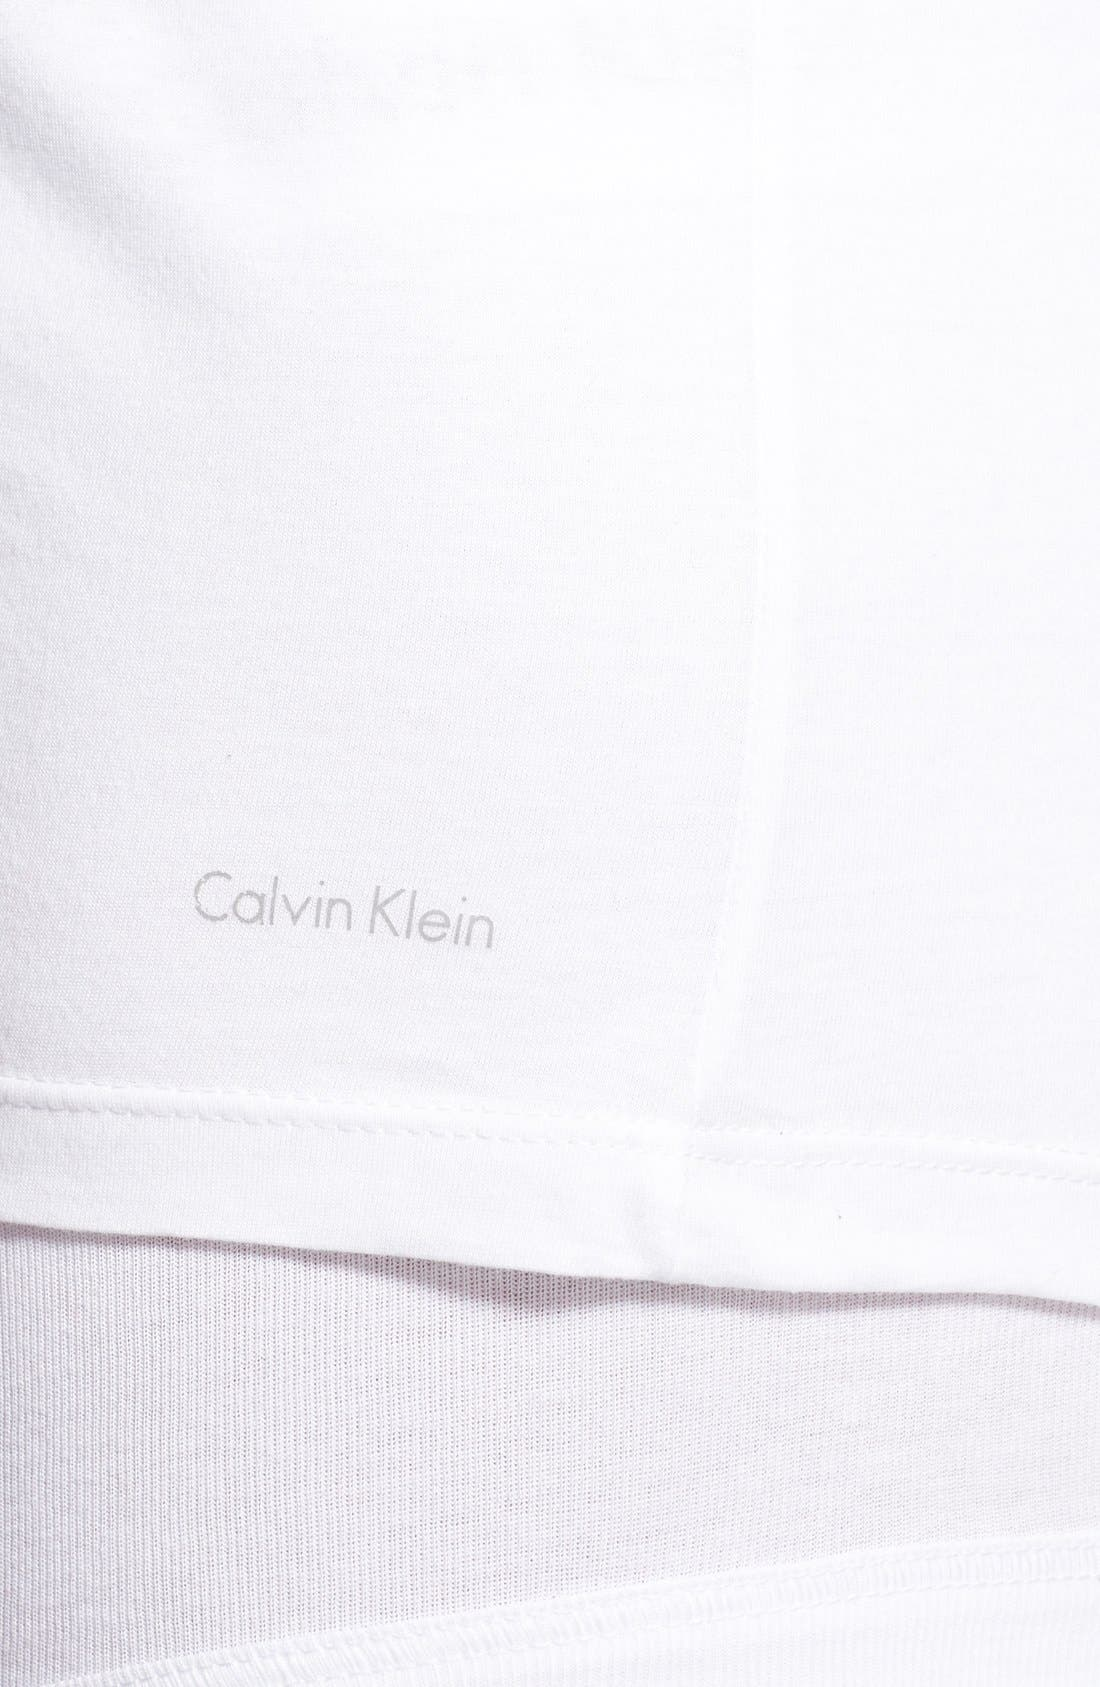 CALVIN KLEIN, Slim Fit 3-Pack Cotton T-Shirt, Alternate thumbnail 4, color, WHITE